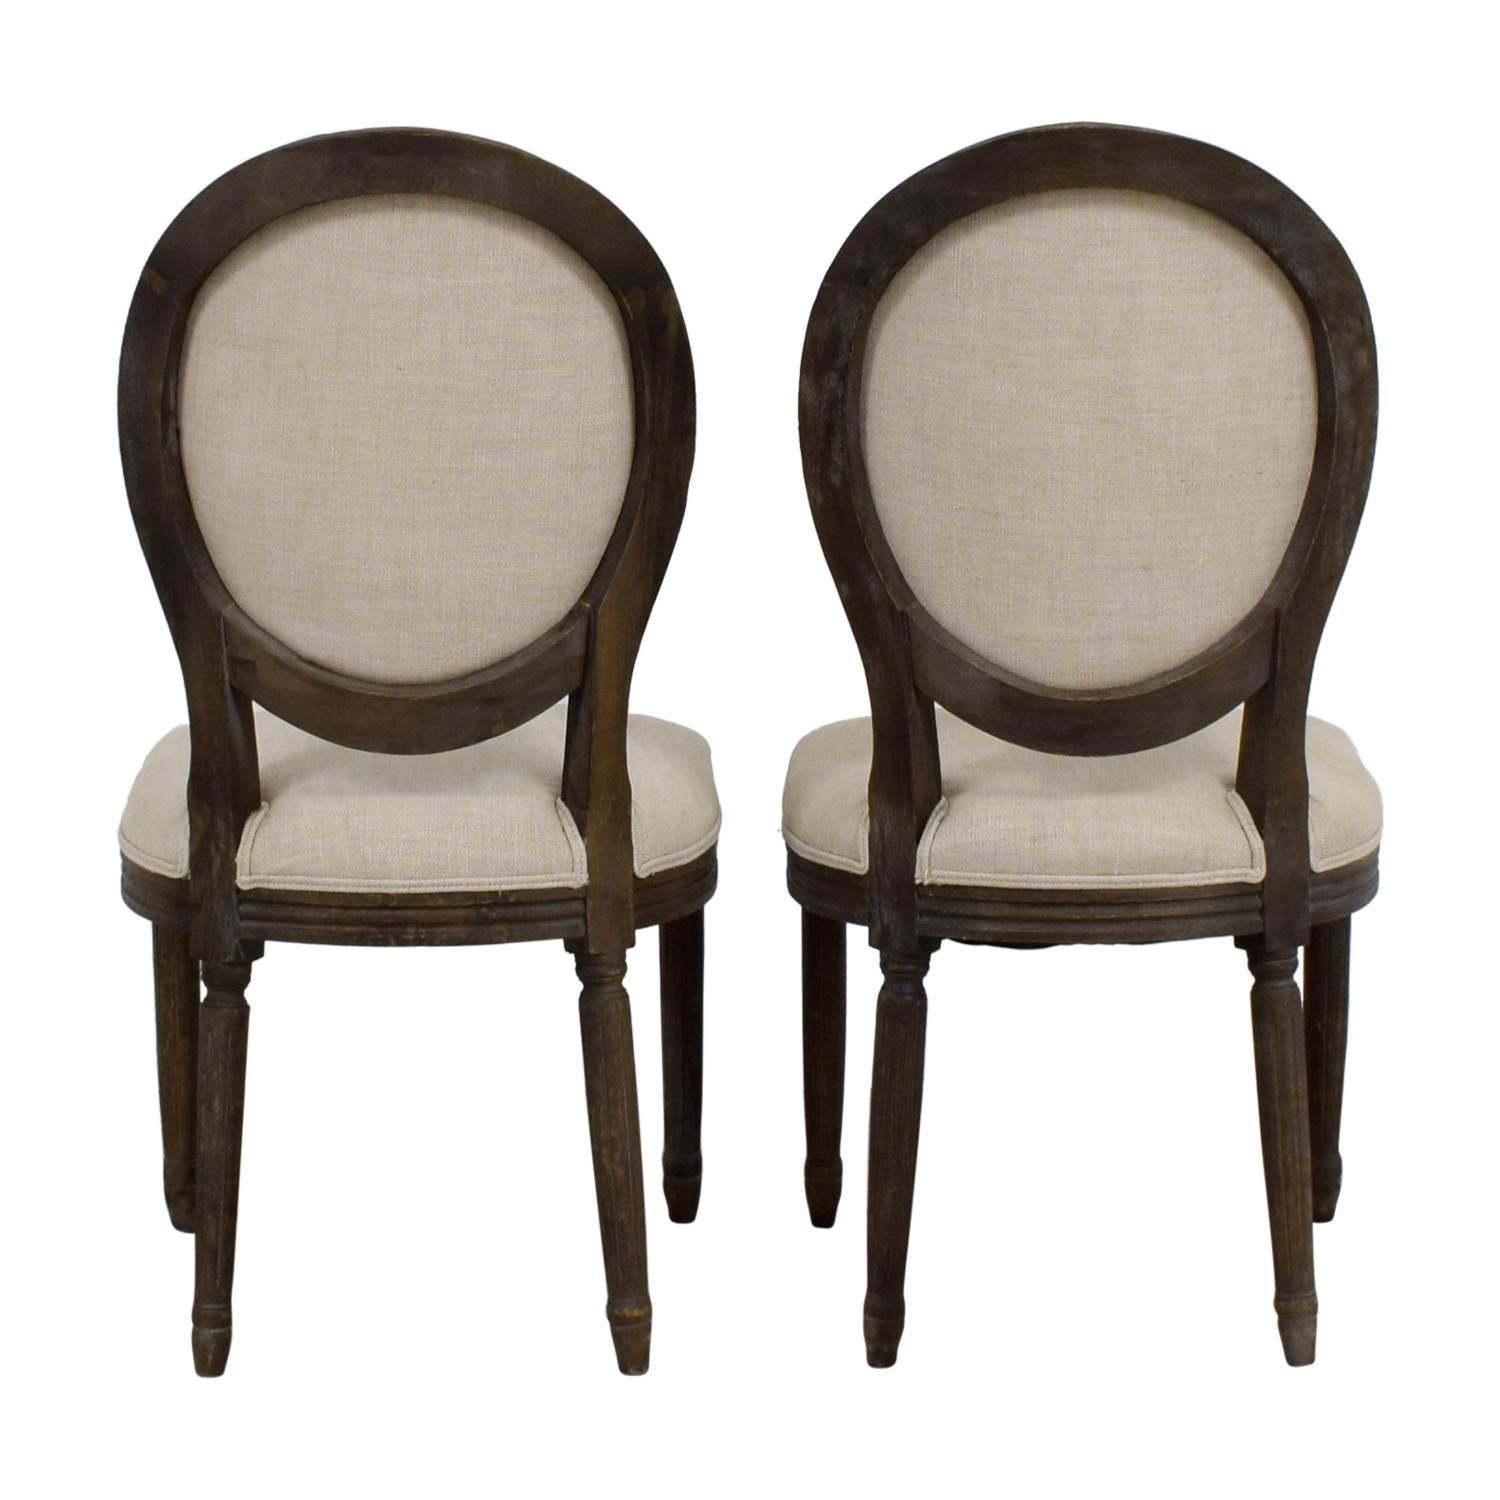 shop Restoration Hardware Beige Dining Chairs Restoration Hardware Chairs